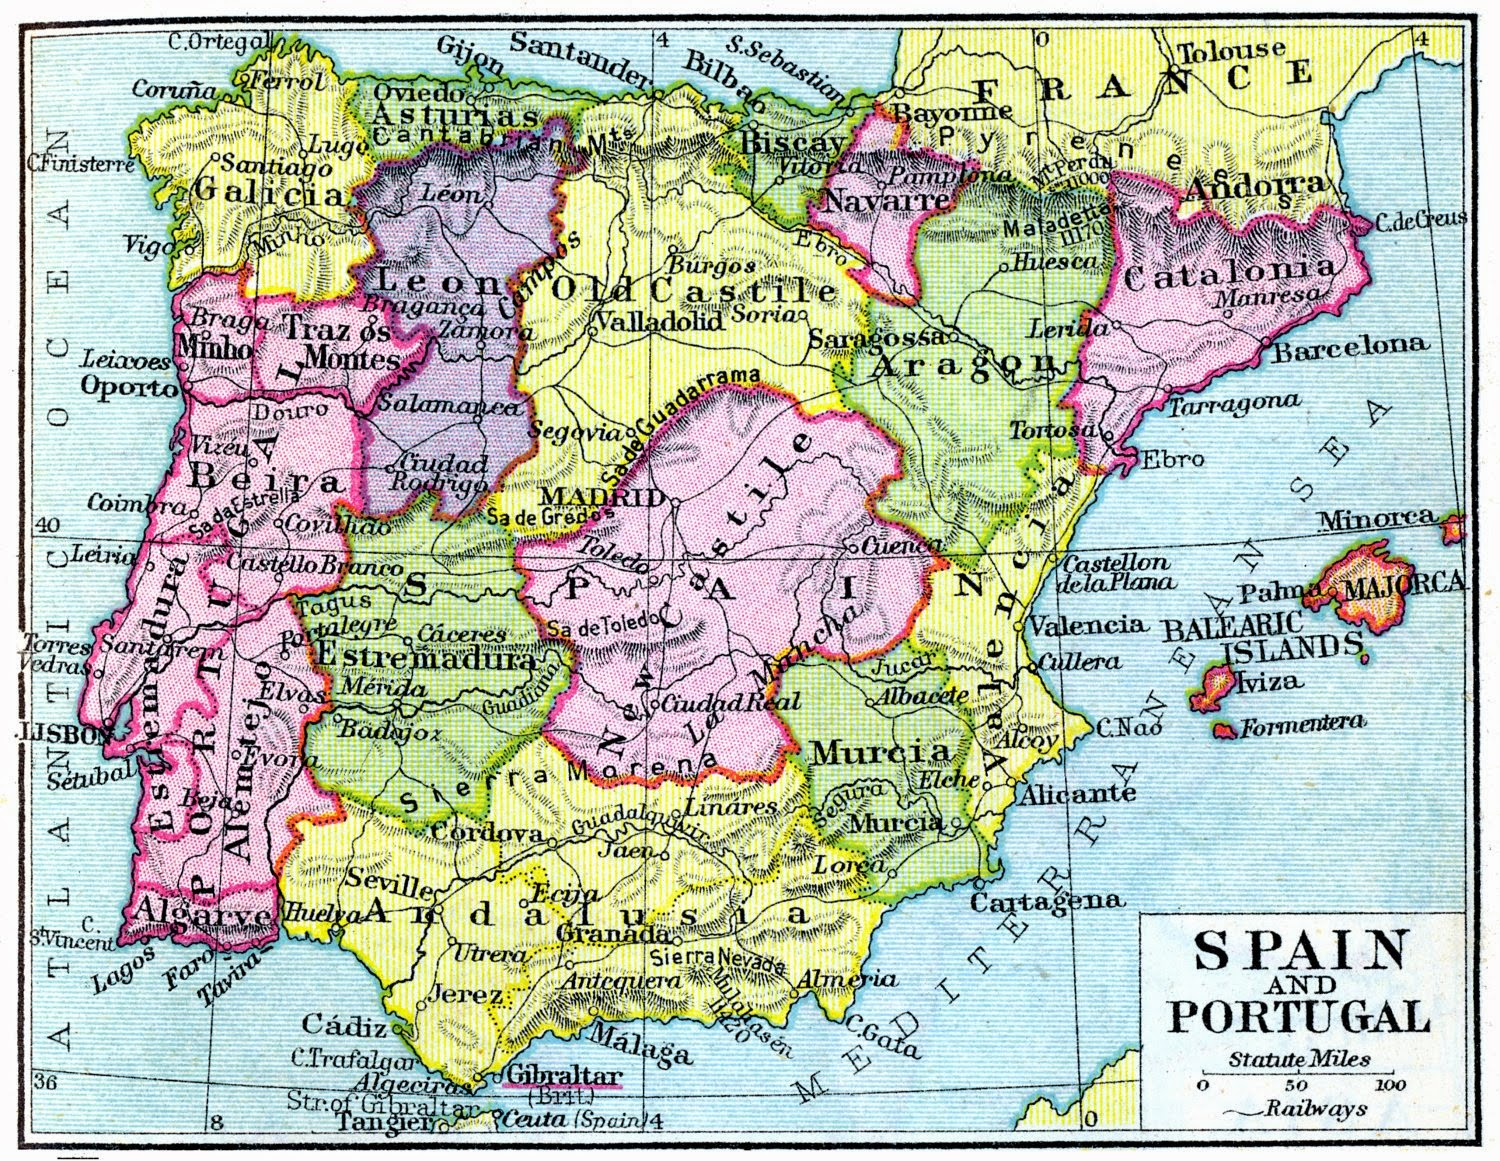 Mapa de España 1926 Alexander Keith Johnston